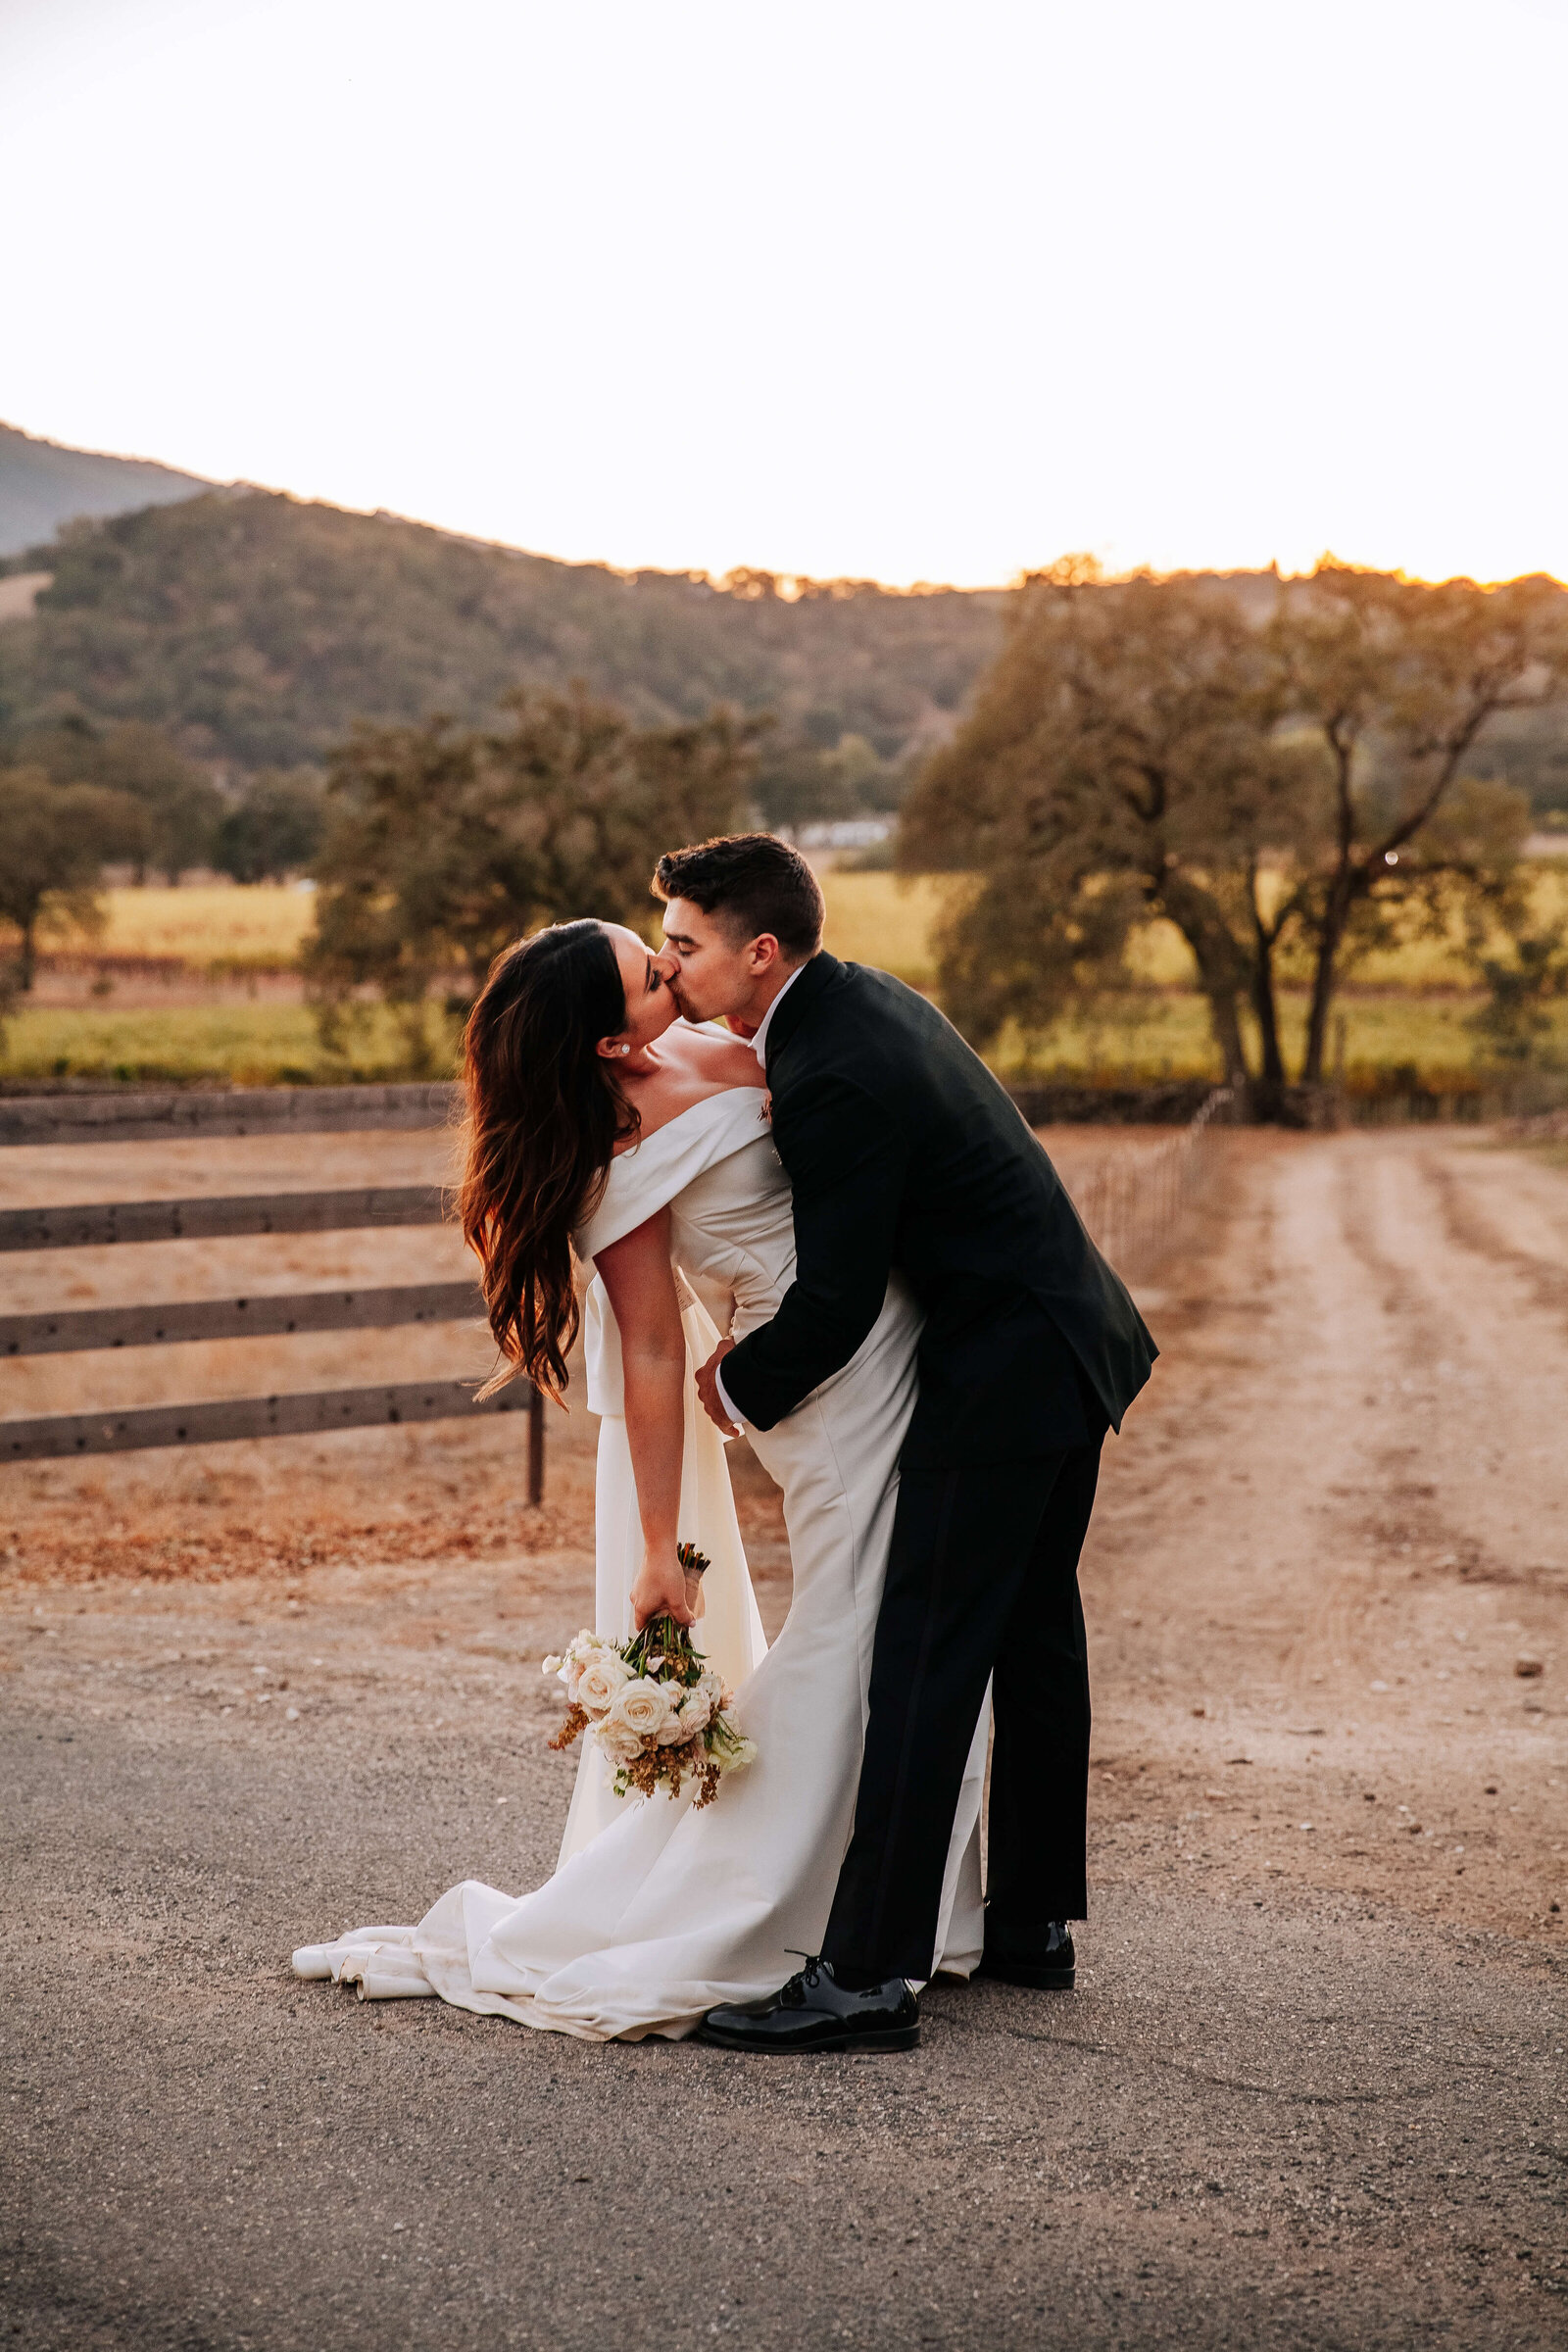 Sonoma-valley-beltane-ranch-california-wedding-events-by-gianna-somona-wedding-planner-18